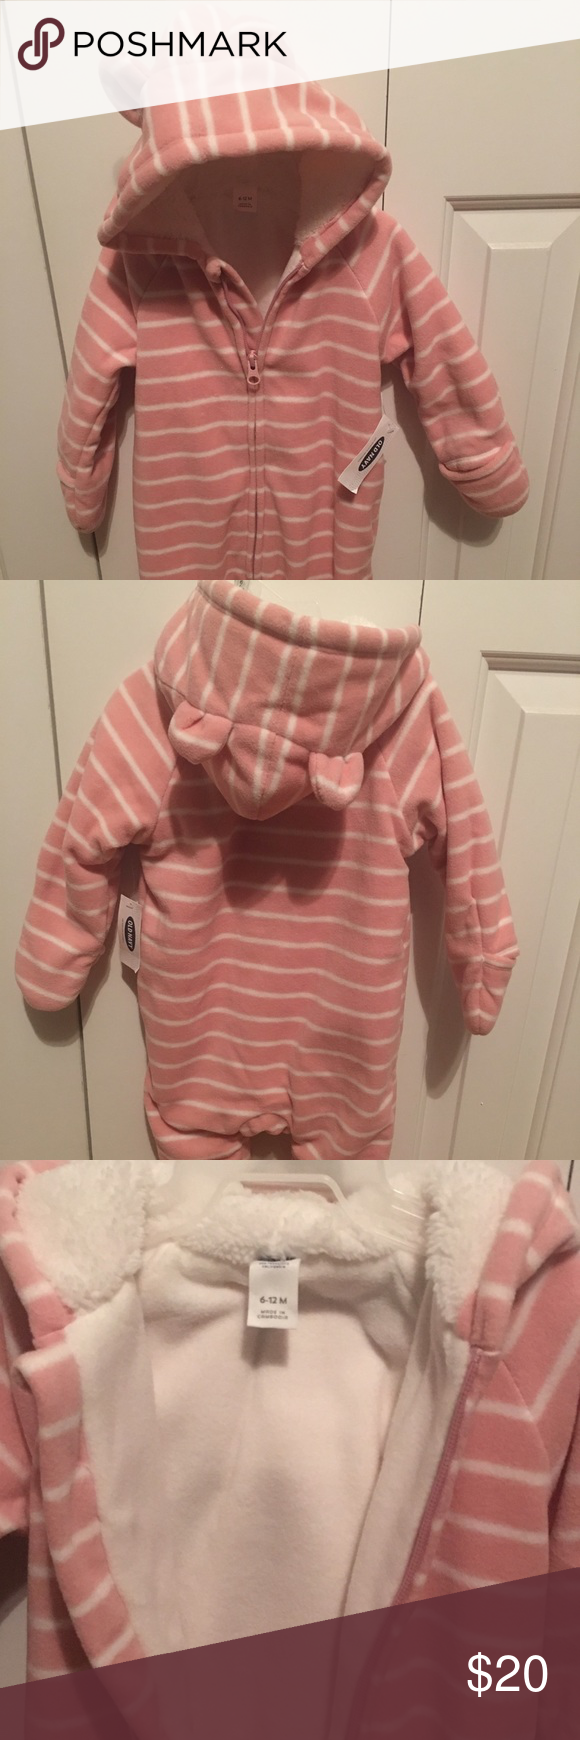 61ae7864b1cf Baby girl Old Navy snowsuit size 6 12 months Brand new Old Navy pink ...